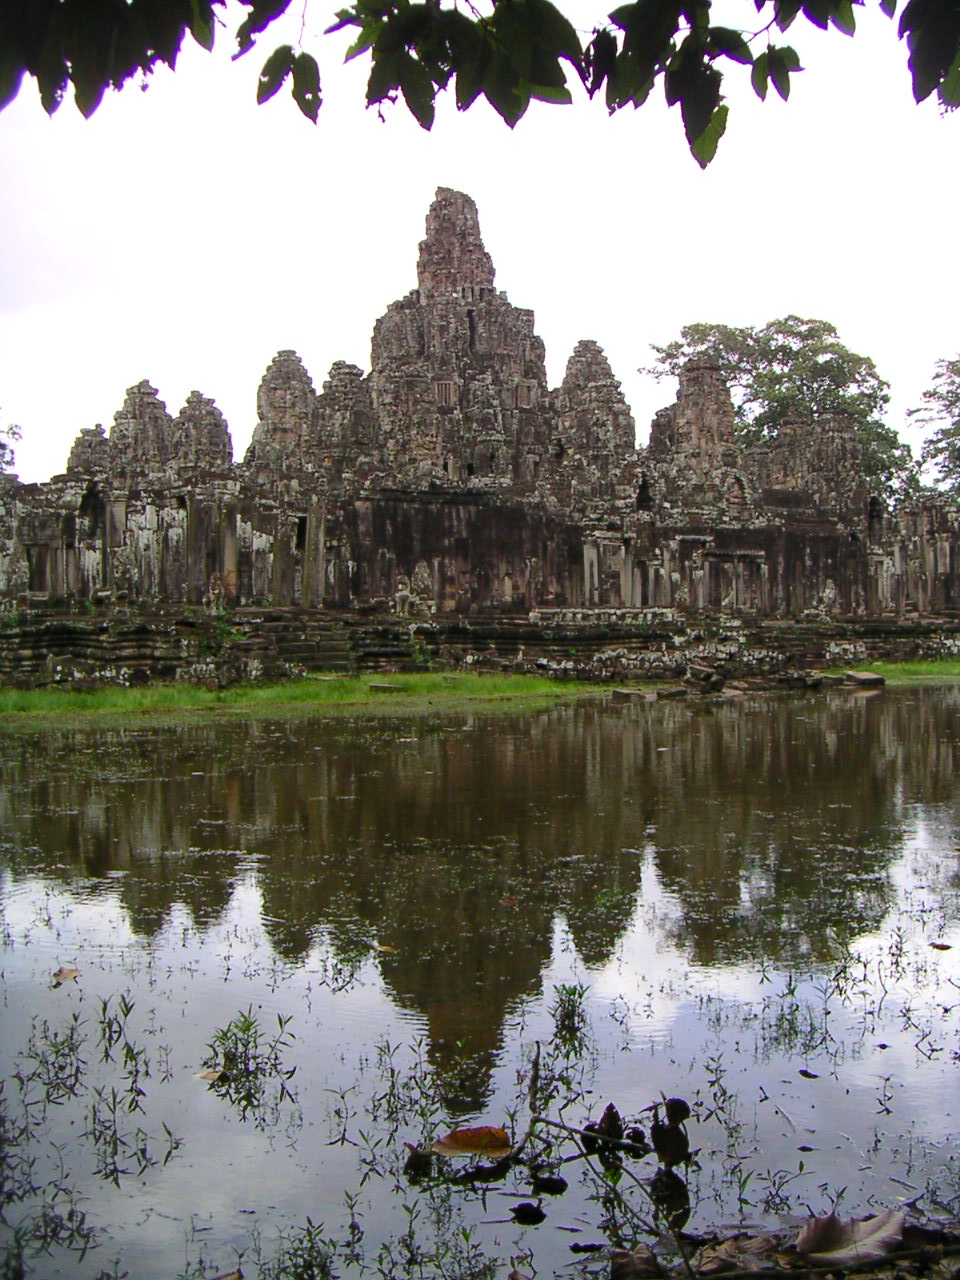 Reflections of Bayon